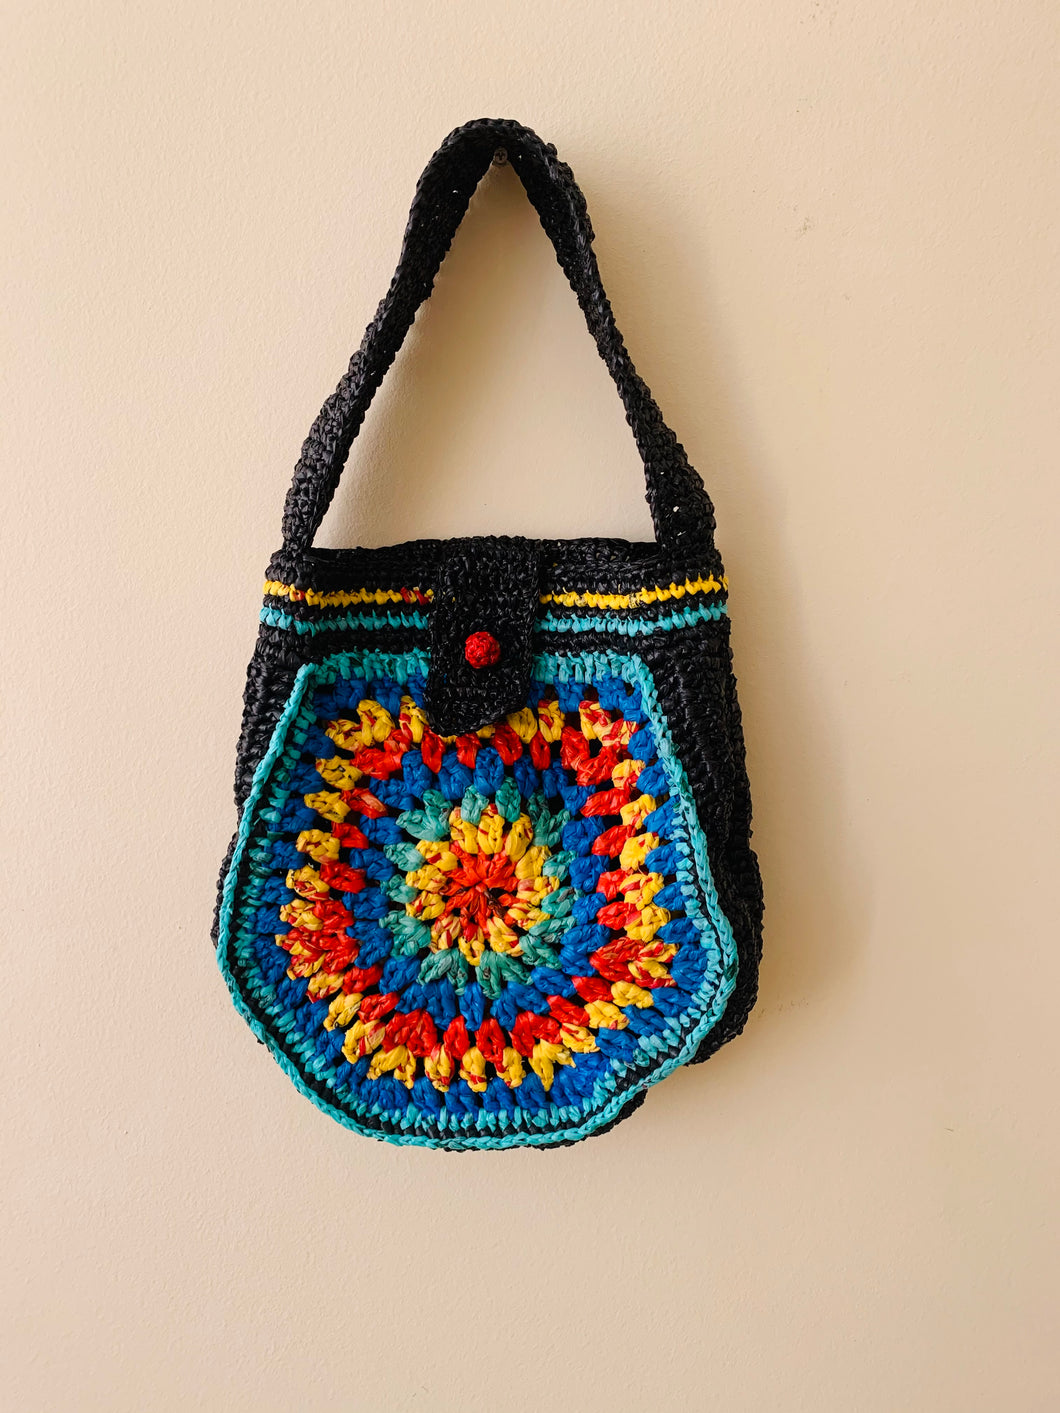 Recycled style, recycled plastic crochet handbag